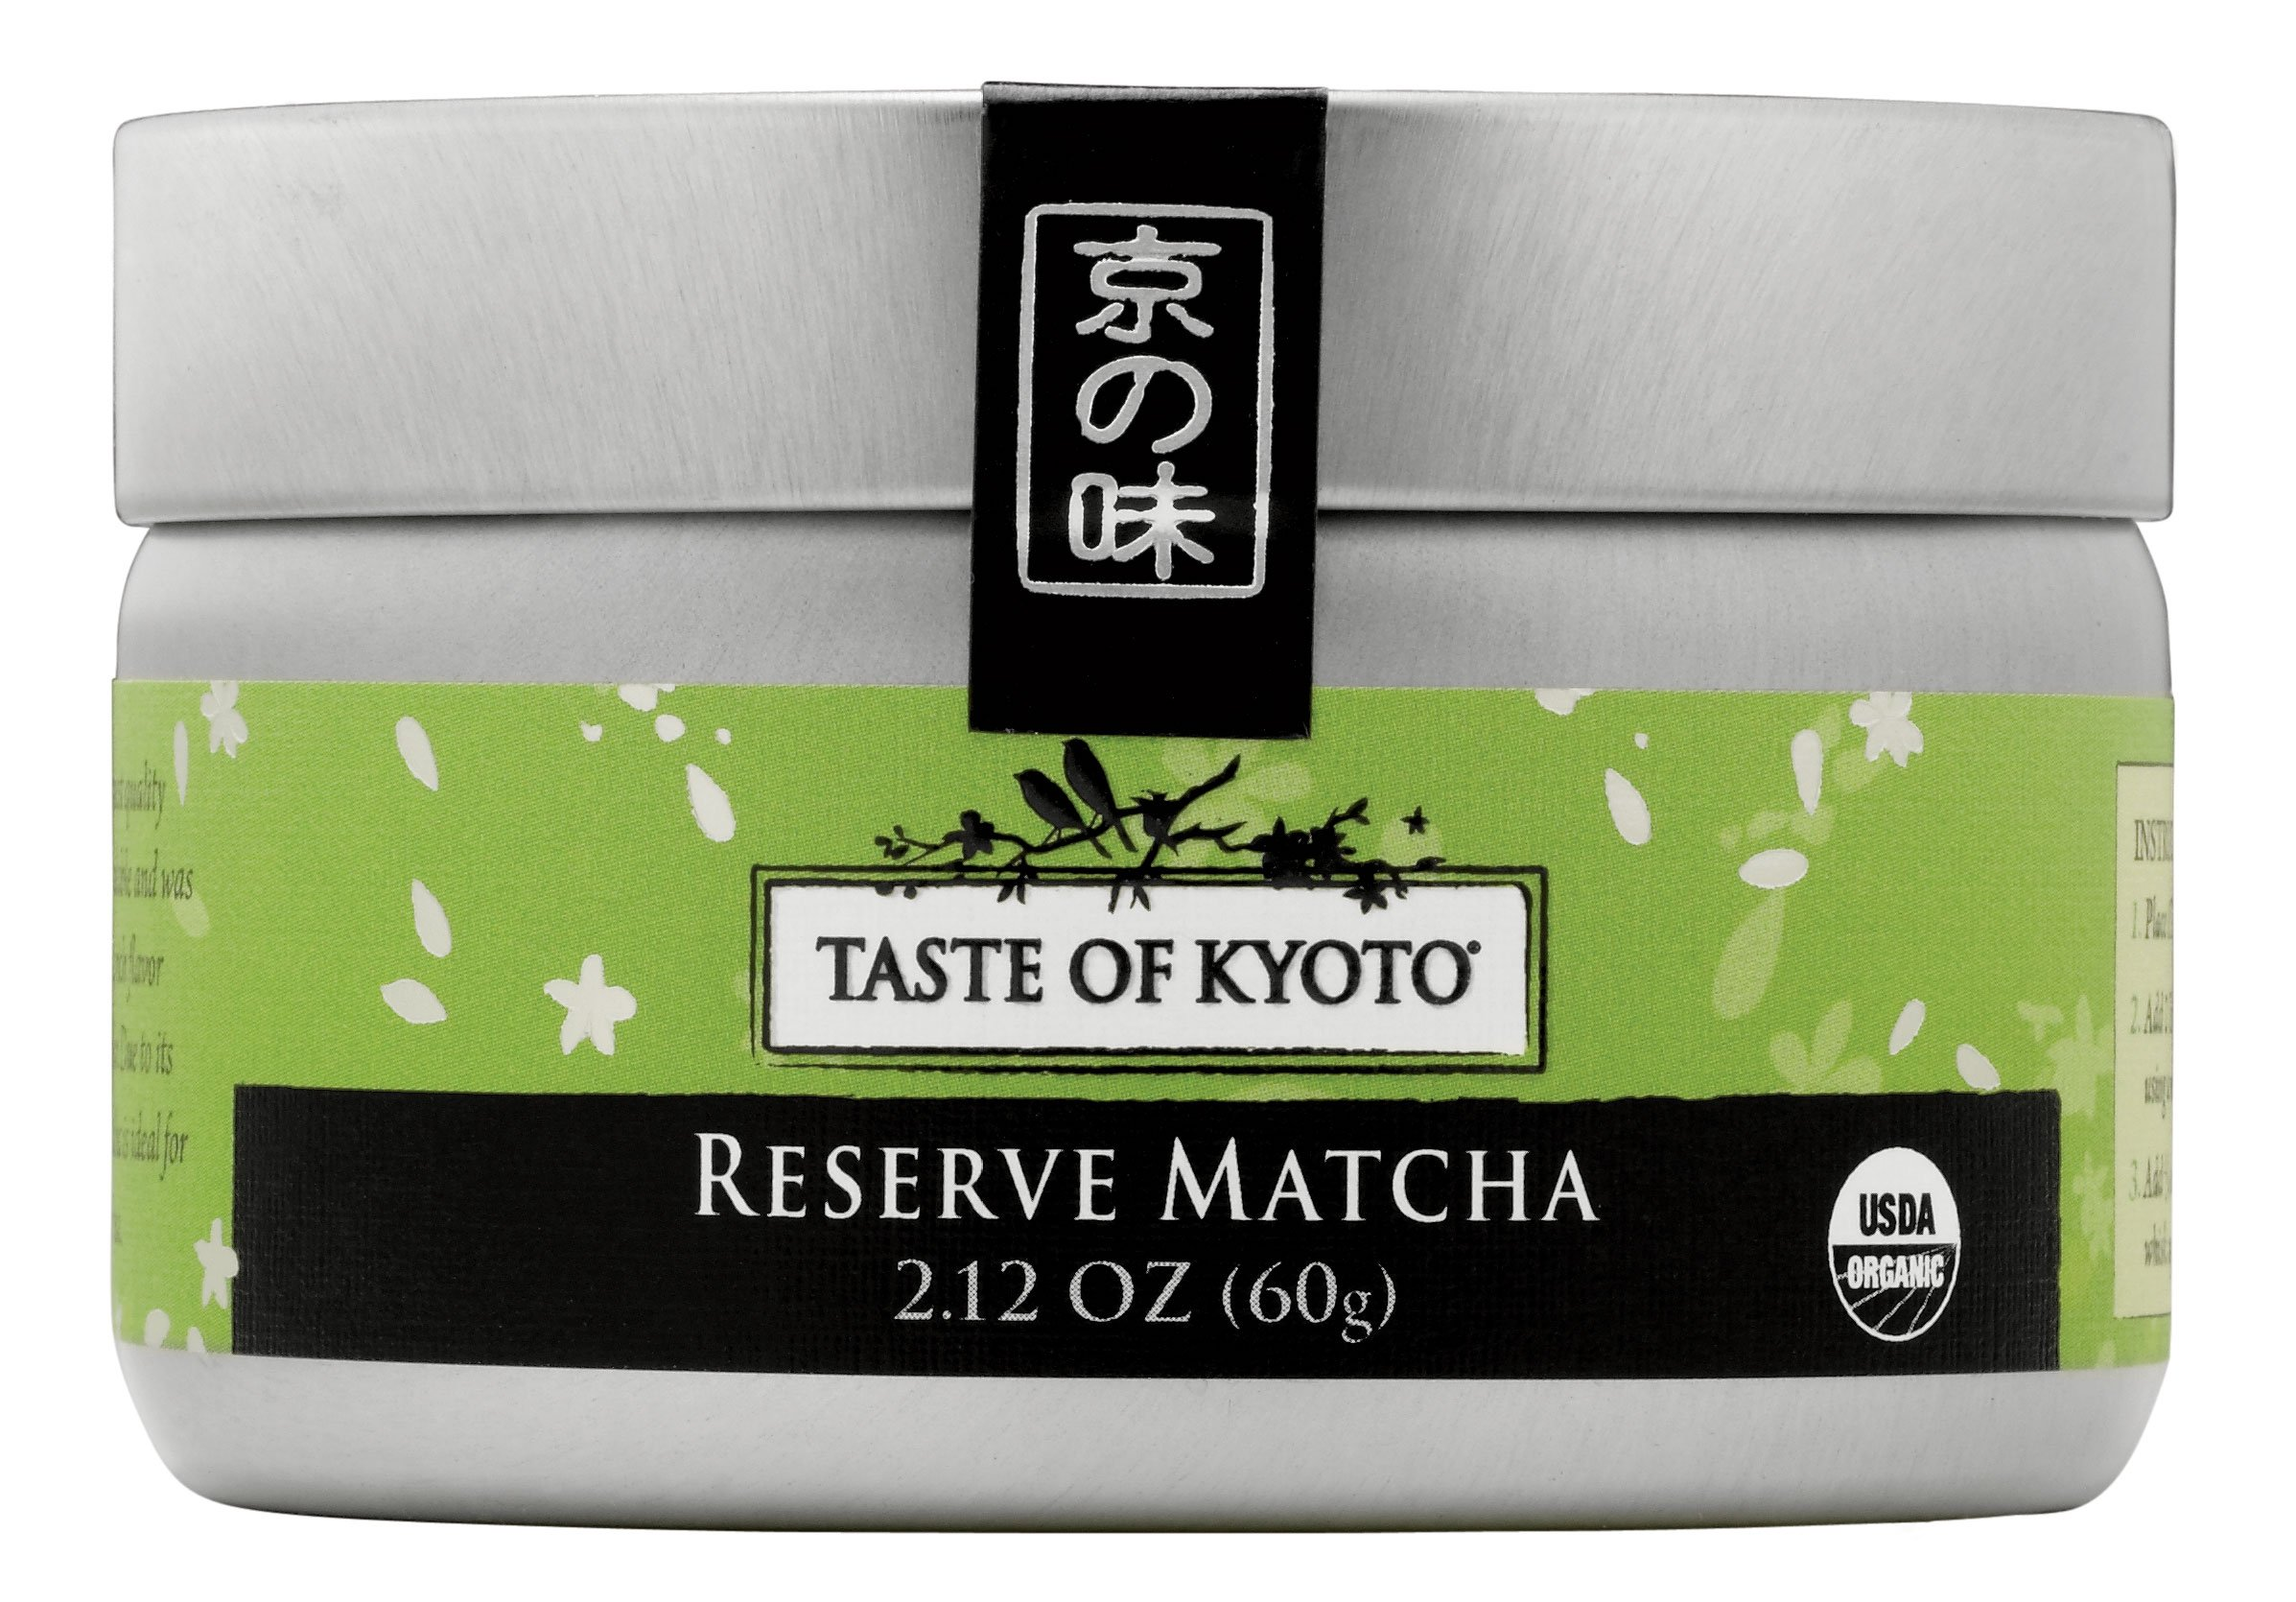 TASTE OF KYOTO Matcha Green Tea, Reserve, 2.12 Ounce by Taste of Kyoto